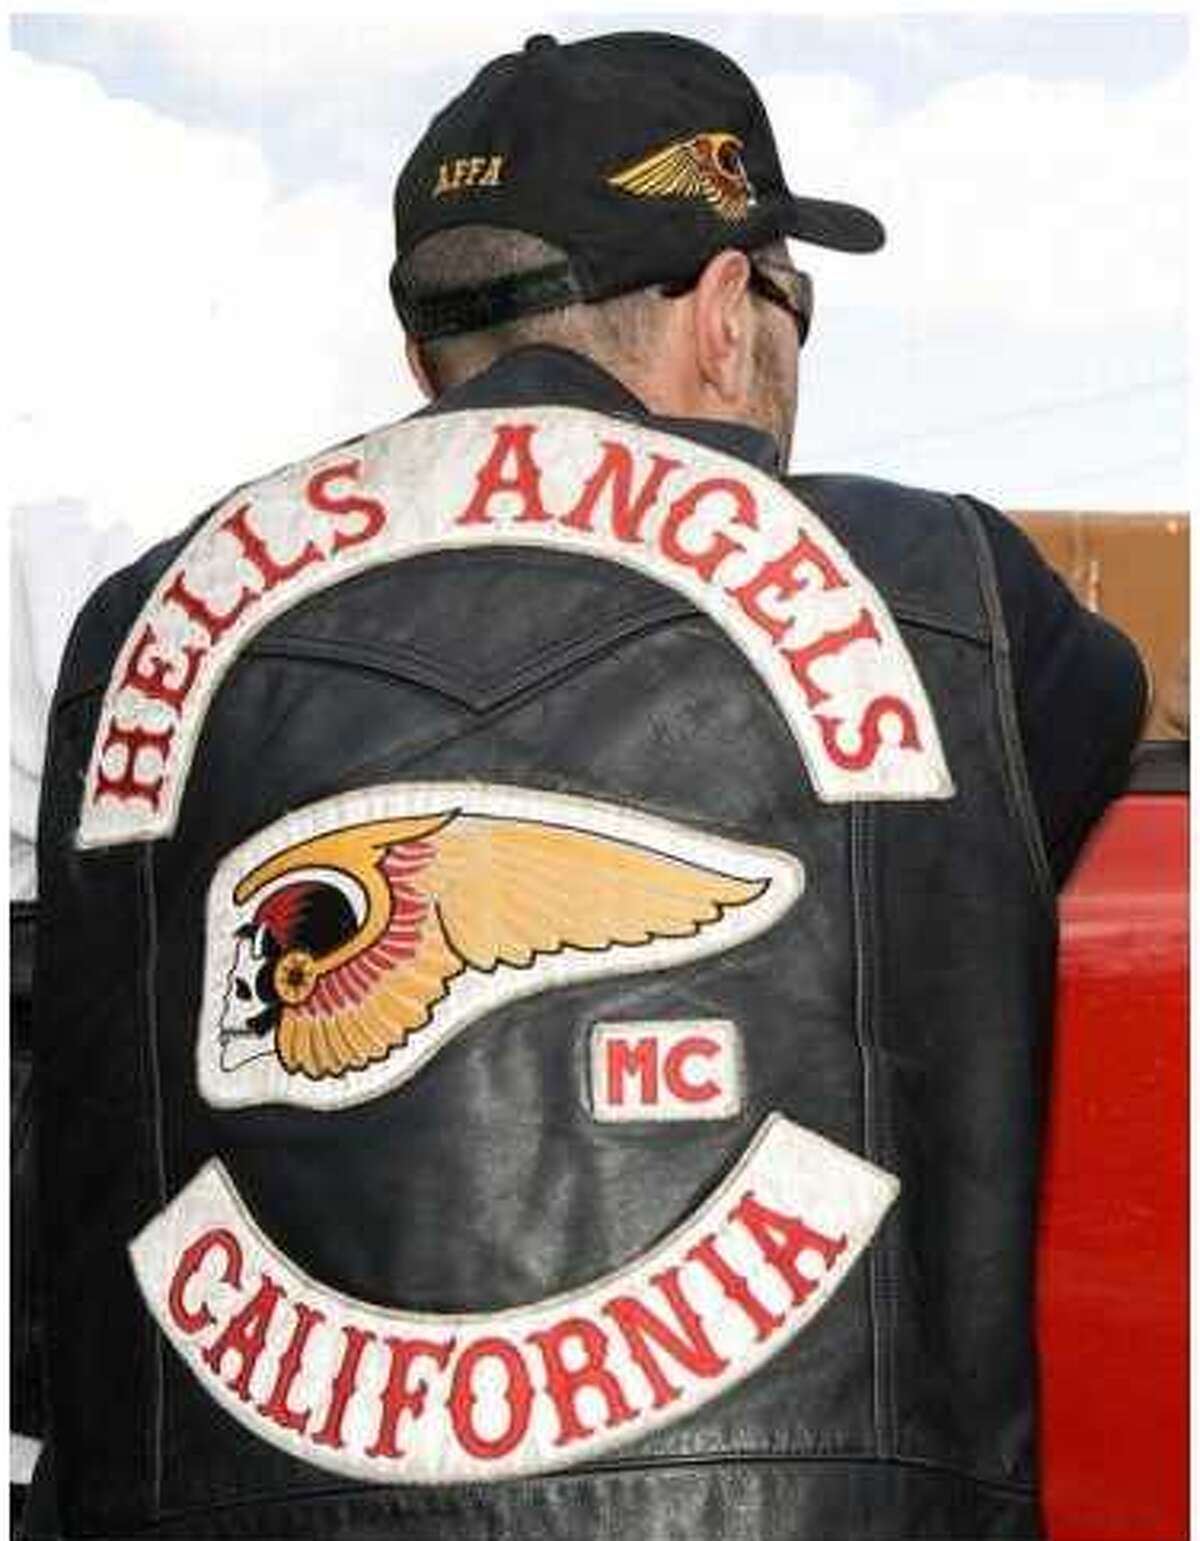 This jacket shows the Death Head symbol that's the basis of a federal lawsuit by Hells Angels against 8732 Apparel and Dillard's.